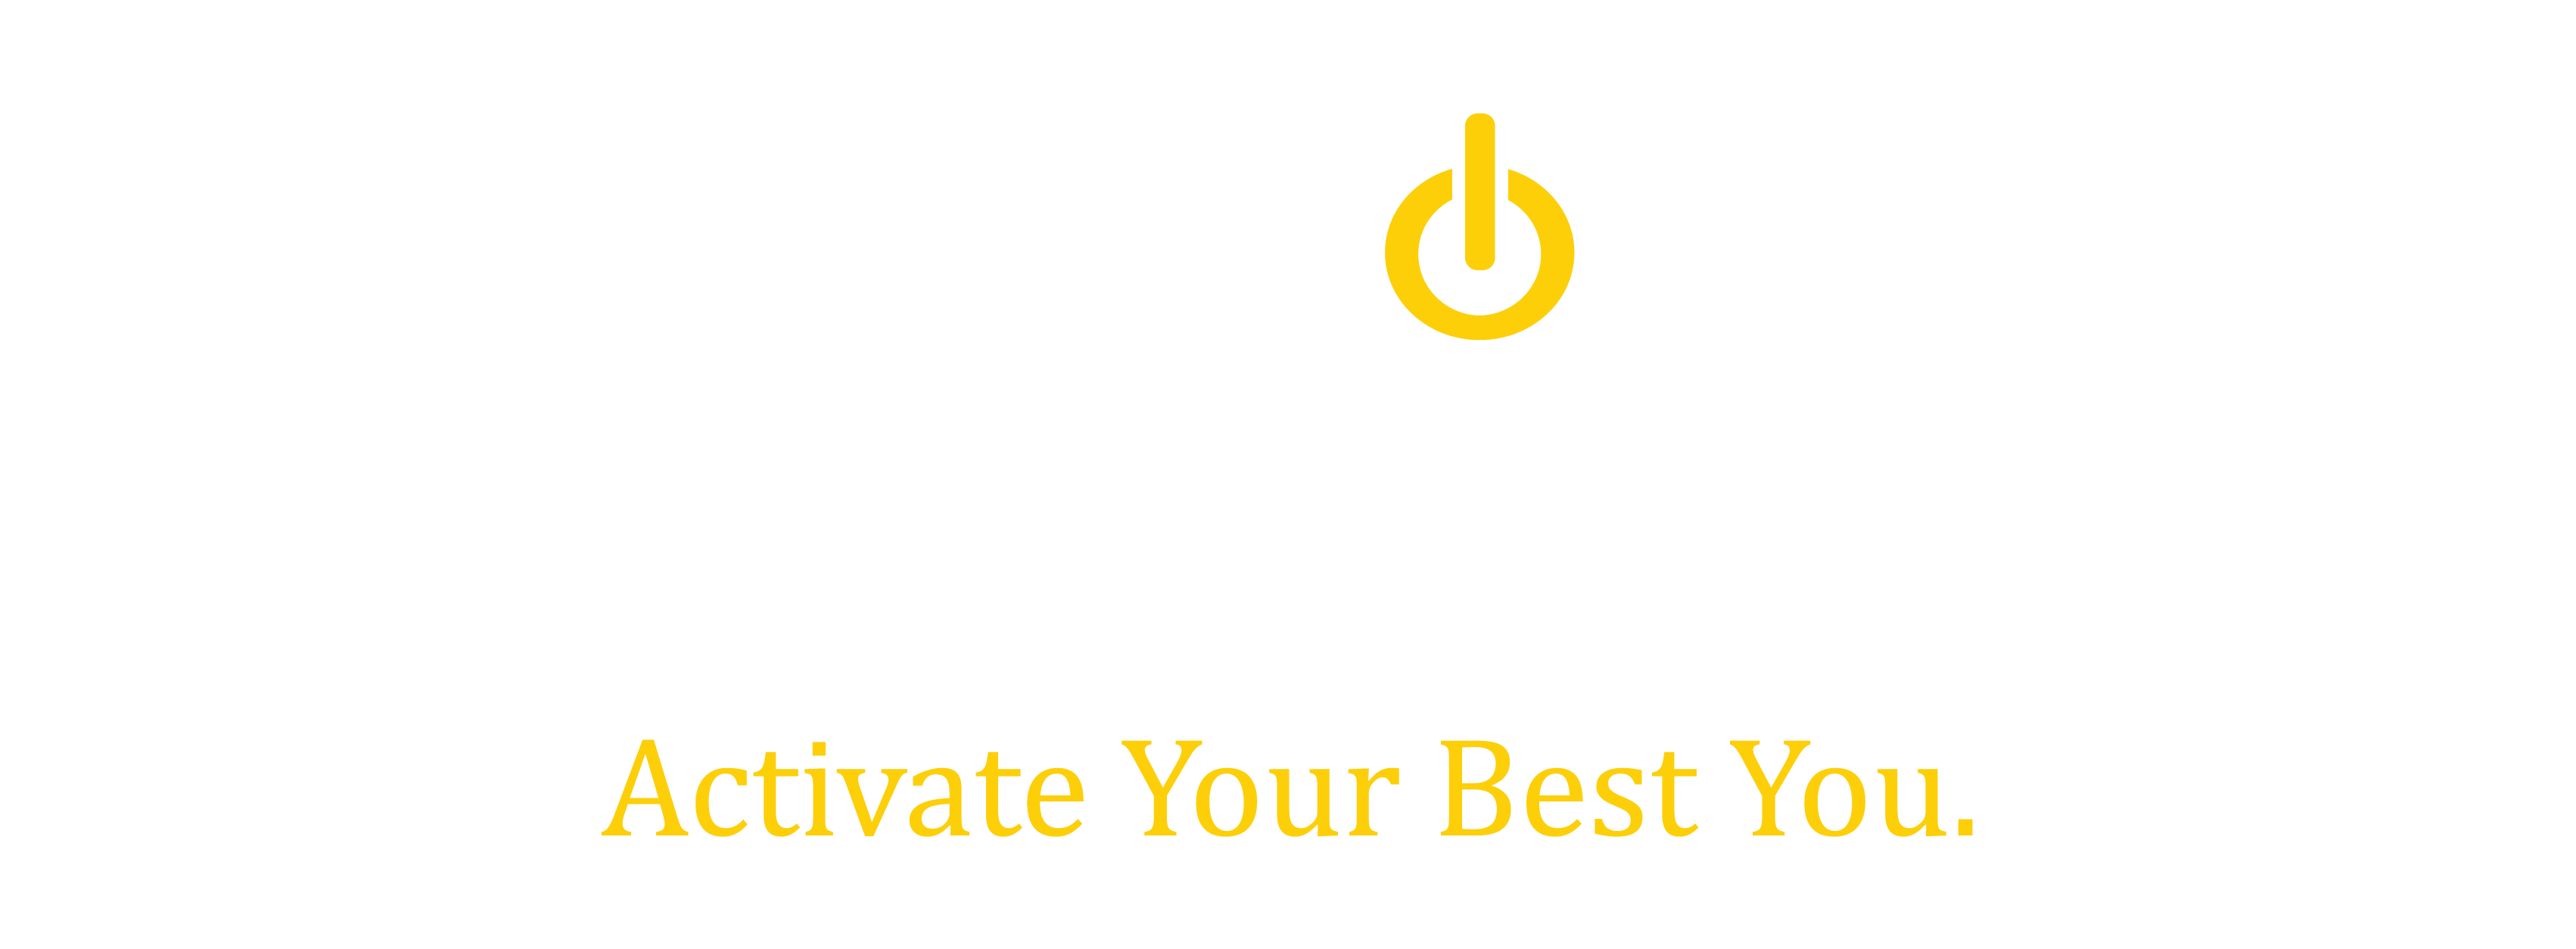 coachivate-logo